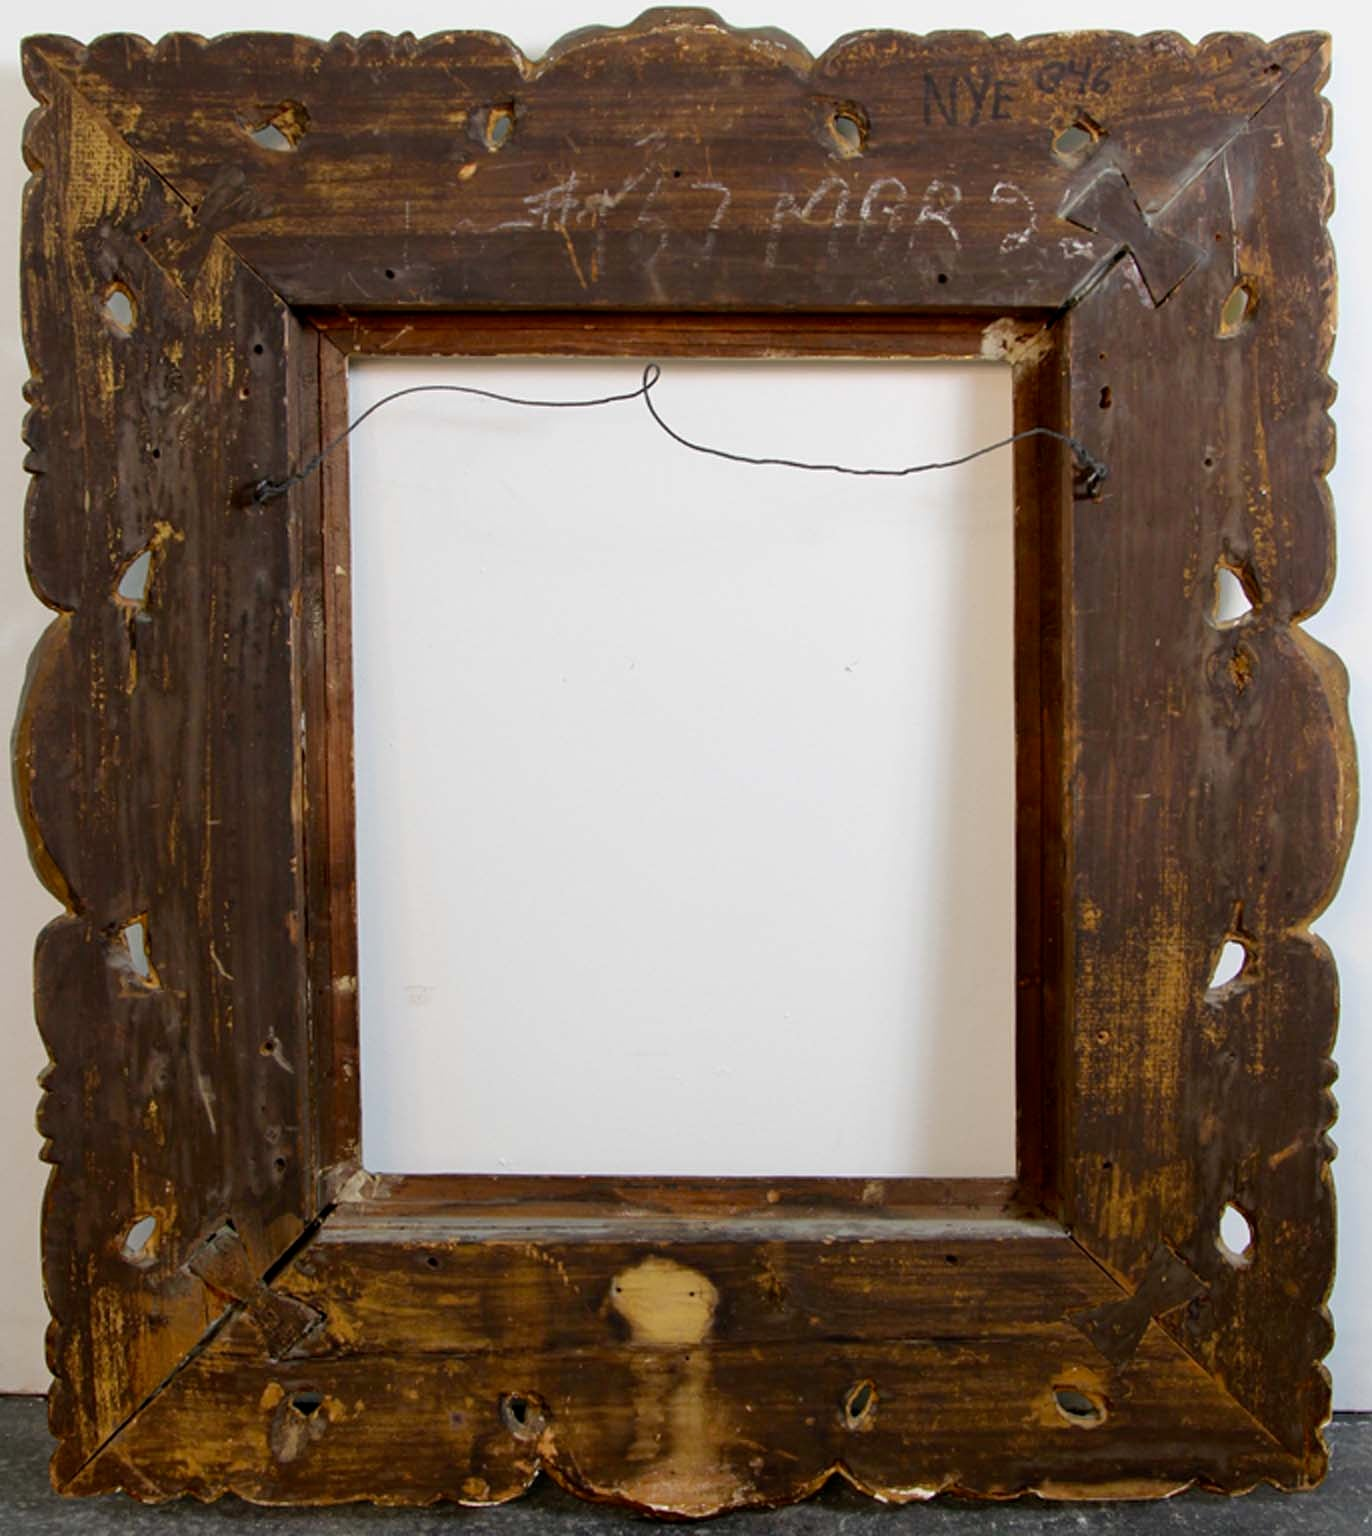 Rare 17th Century Gold Leaf Museum Frame For Sale at 1stdibs